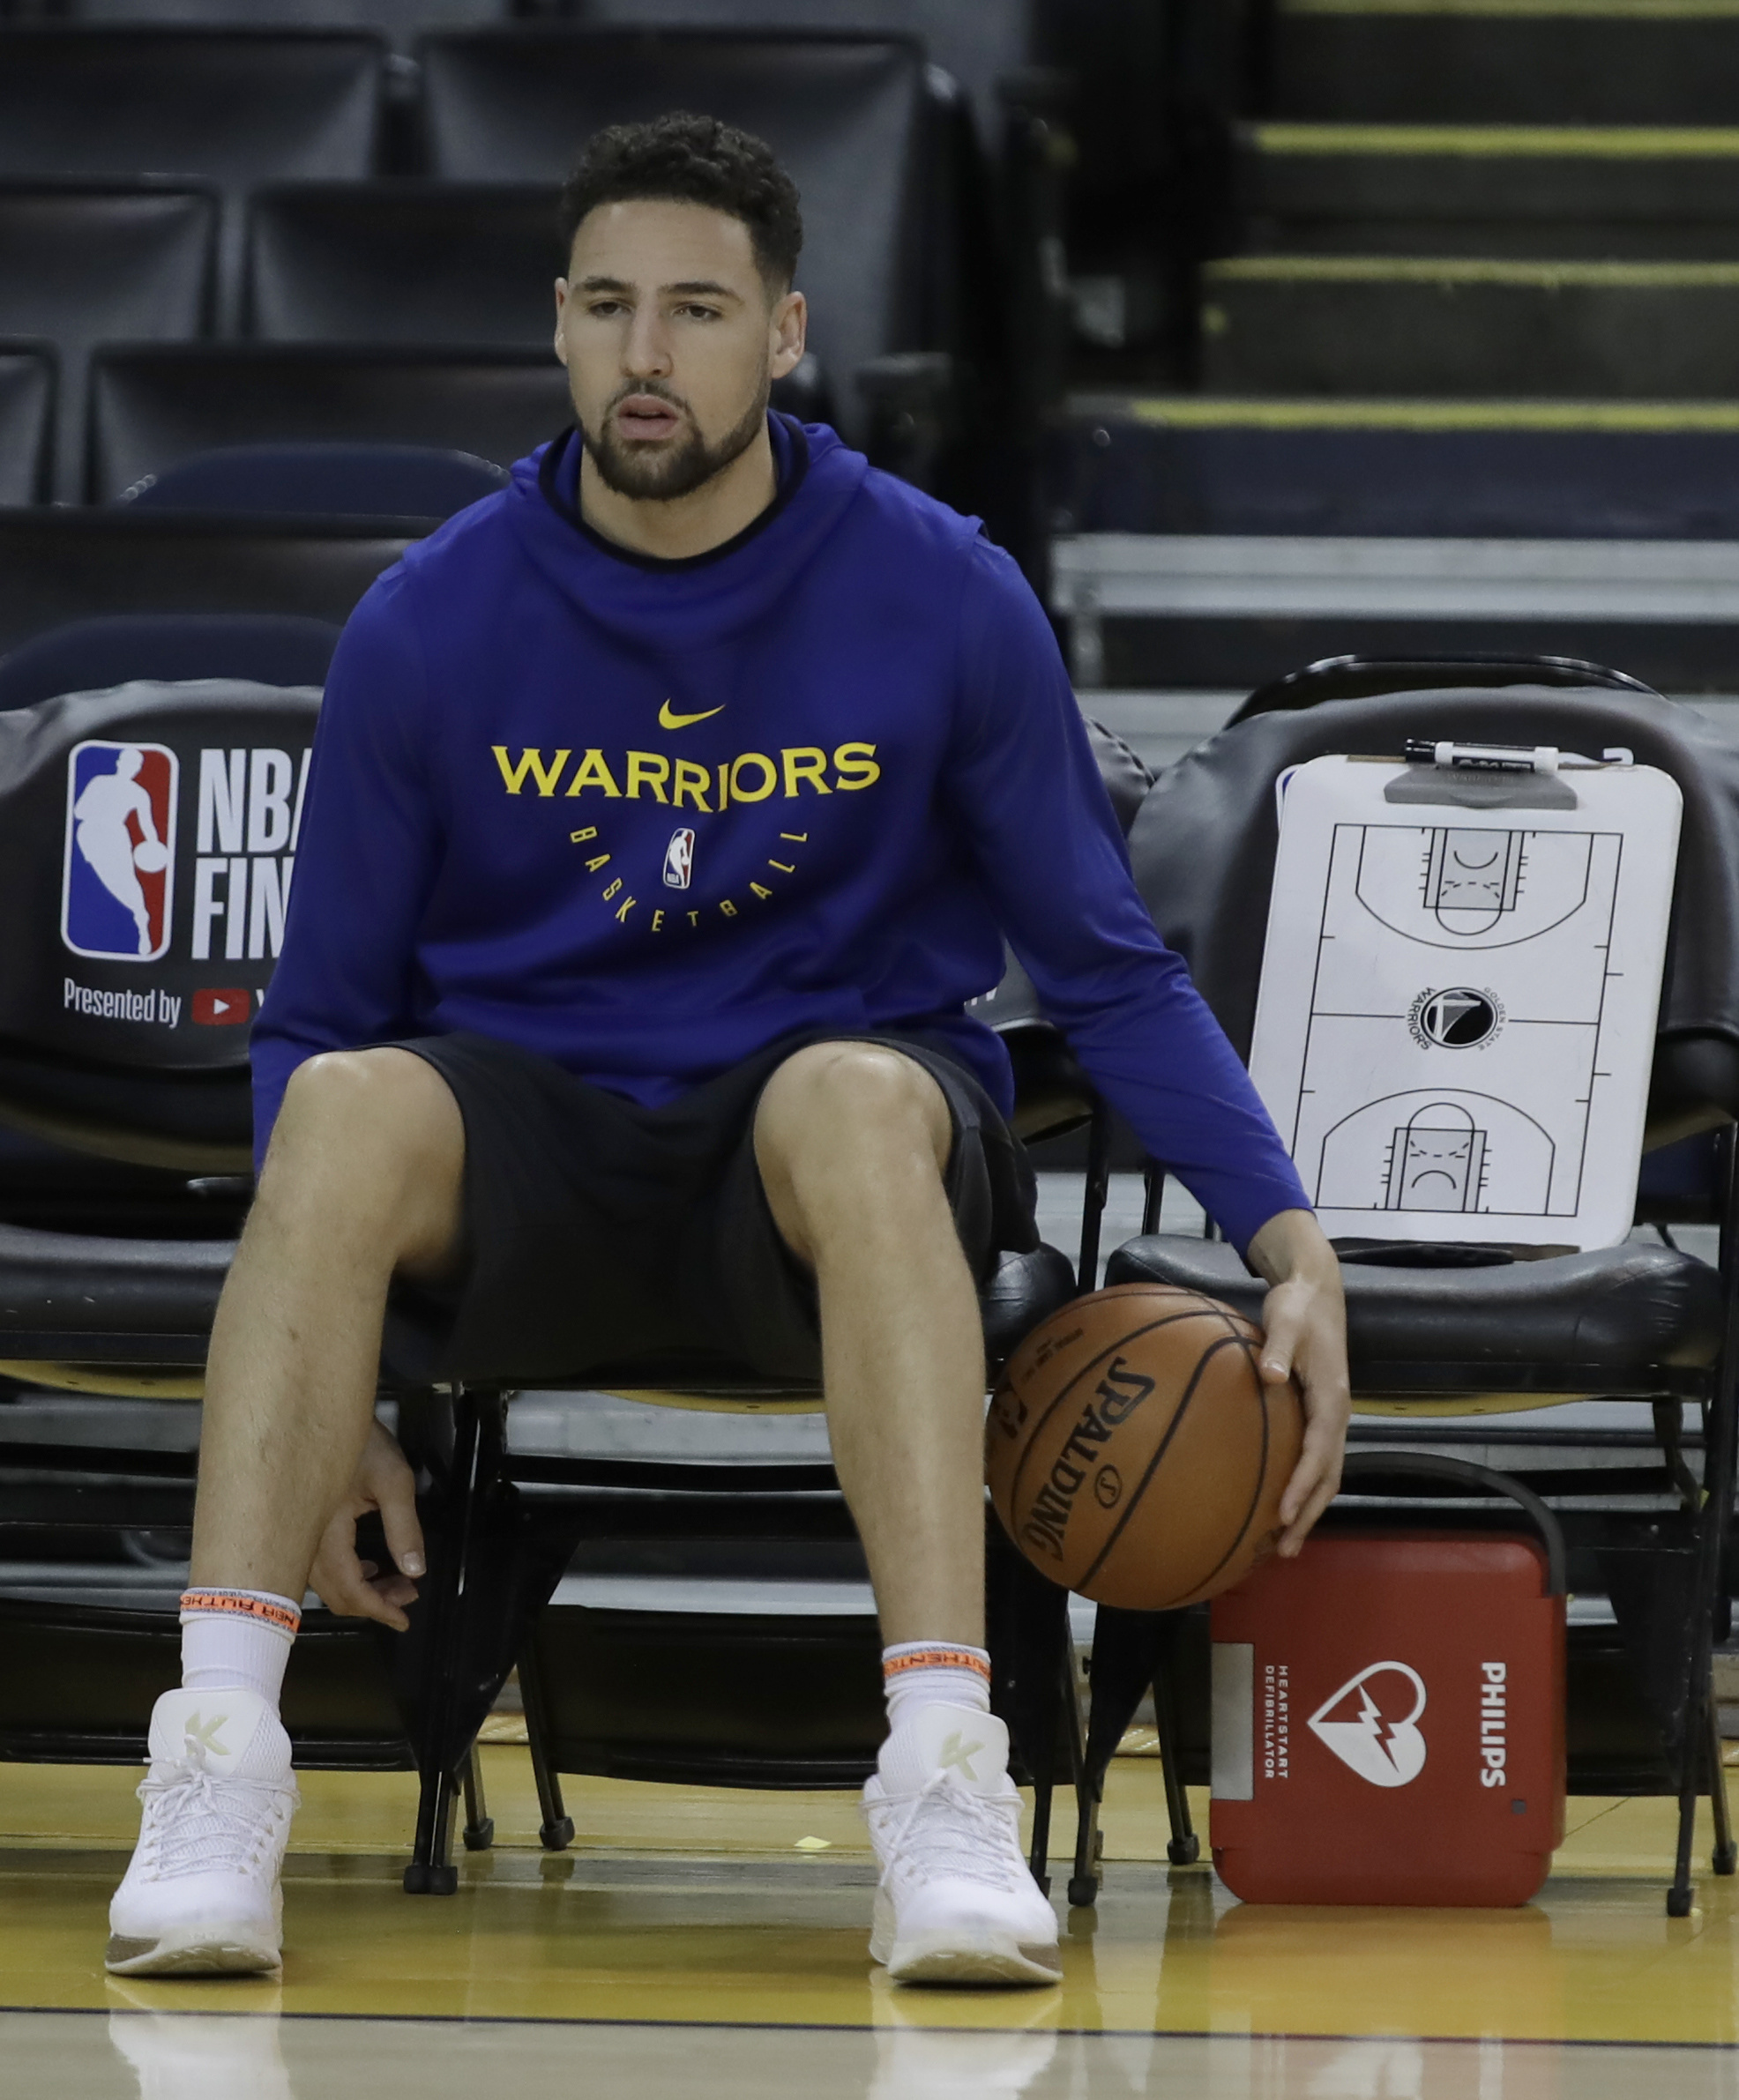 Warriors' Klay Thompson goes through warmups before Game 3